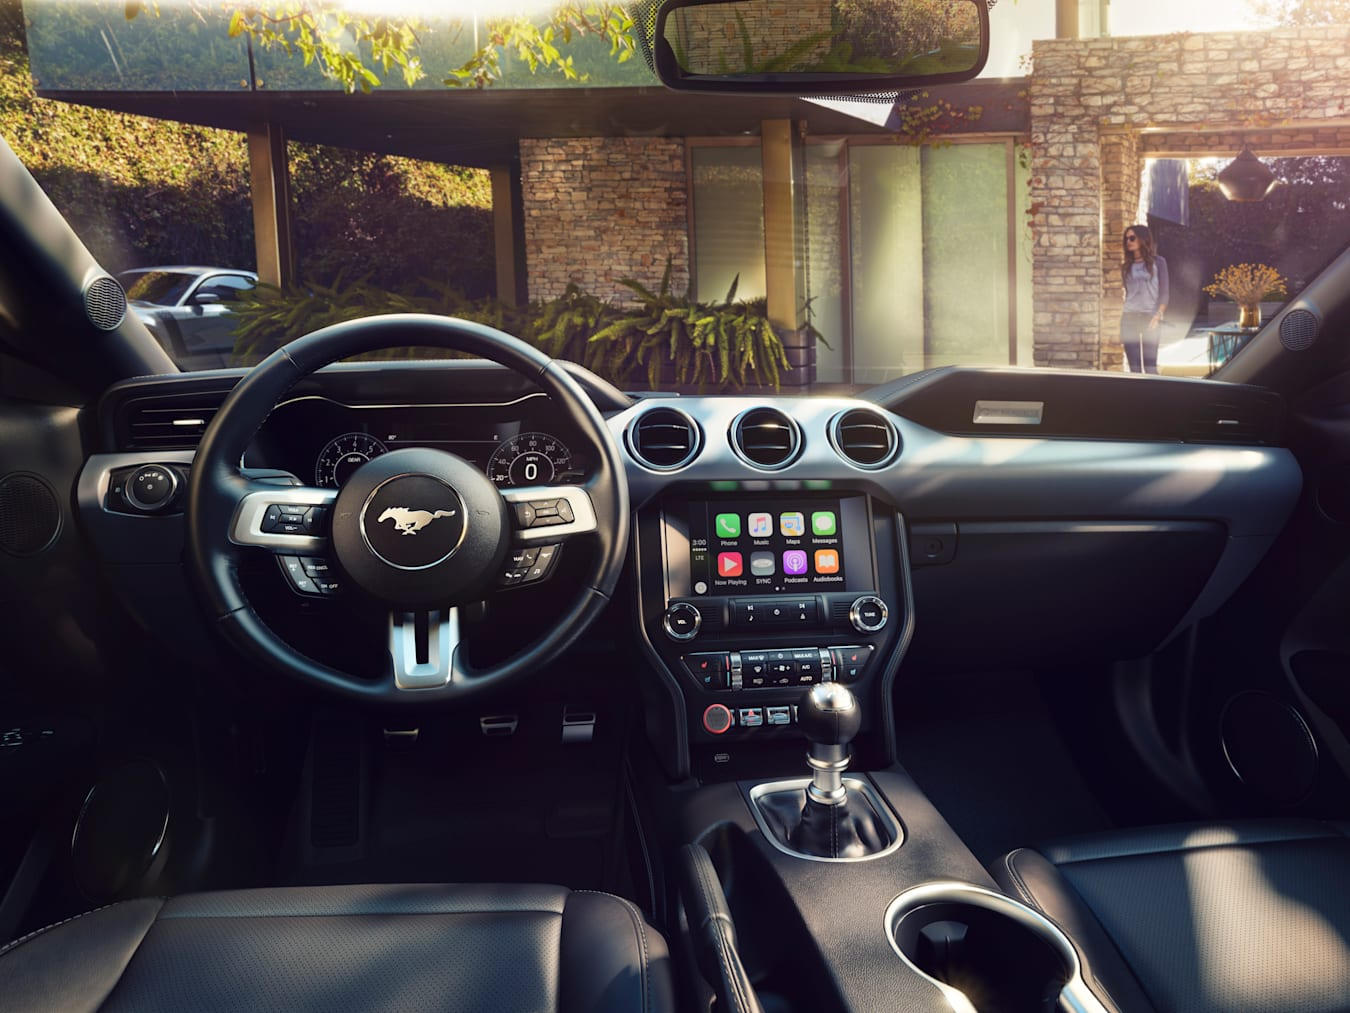 632_New -Ford -Mustang -Interior 1